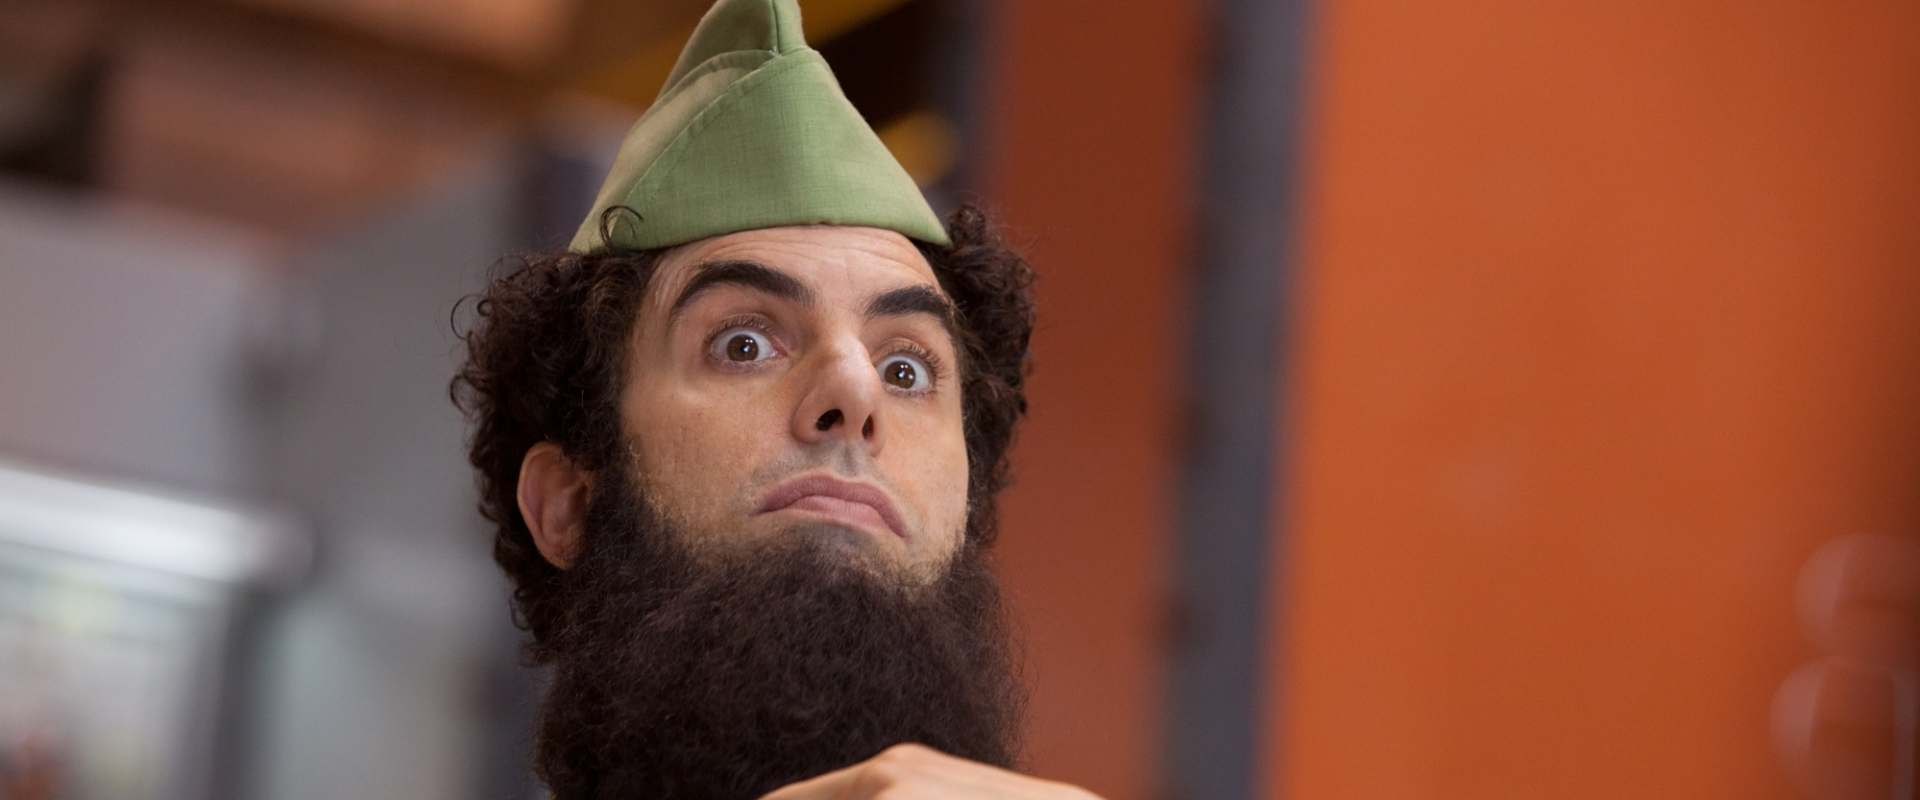 The Dictator background 1